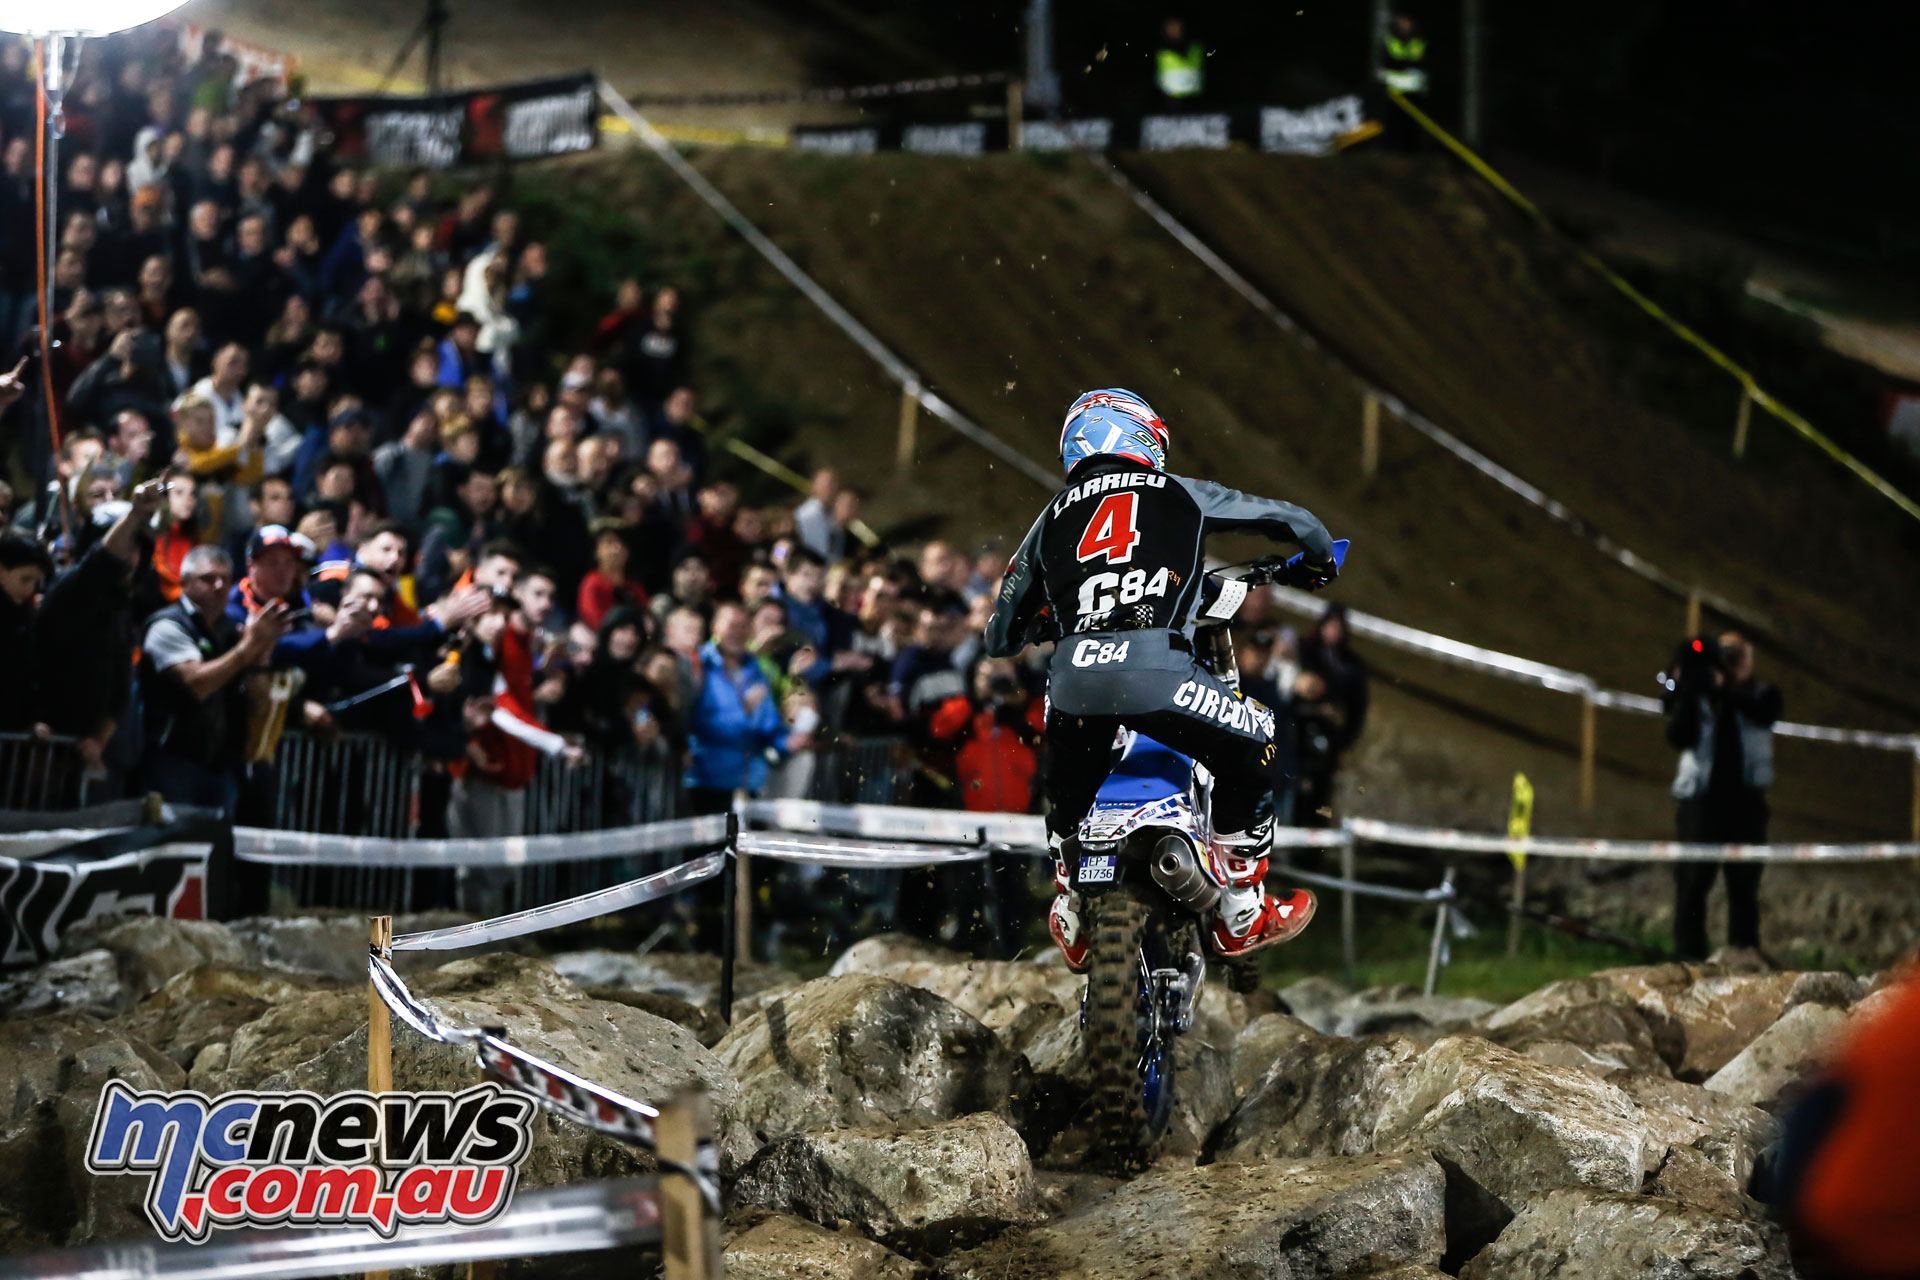 EnduroGP France Loic Larrieu